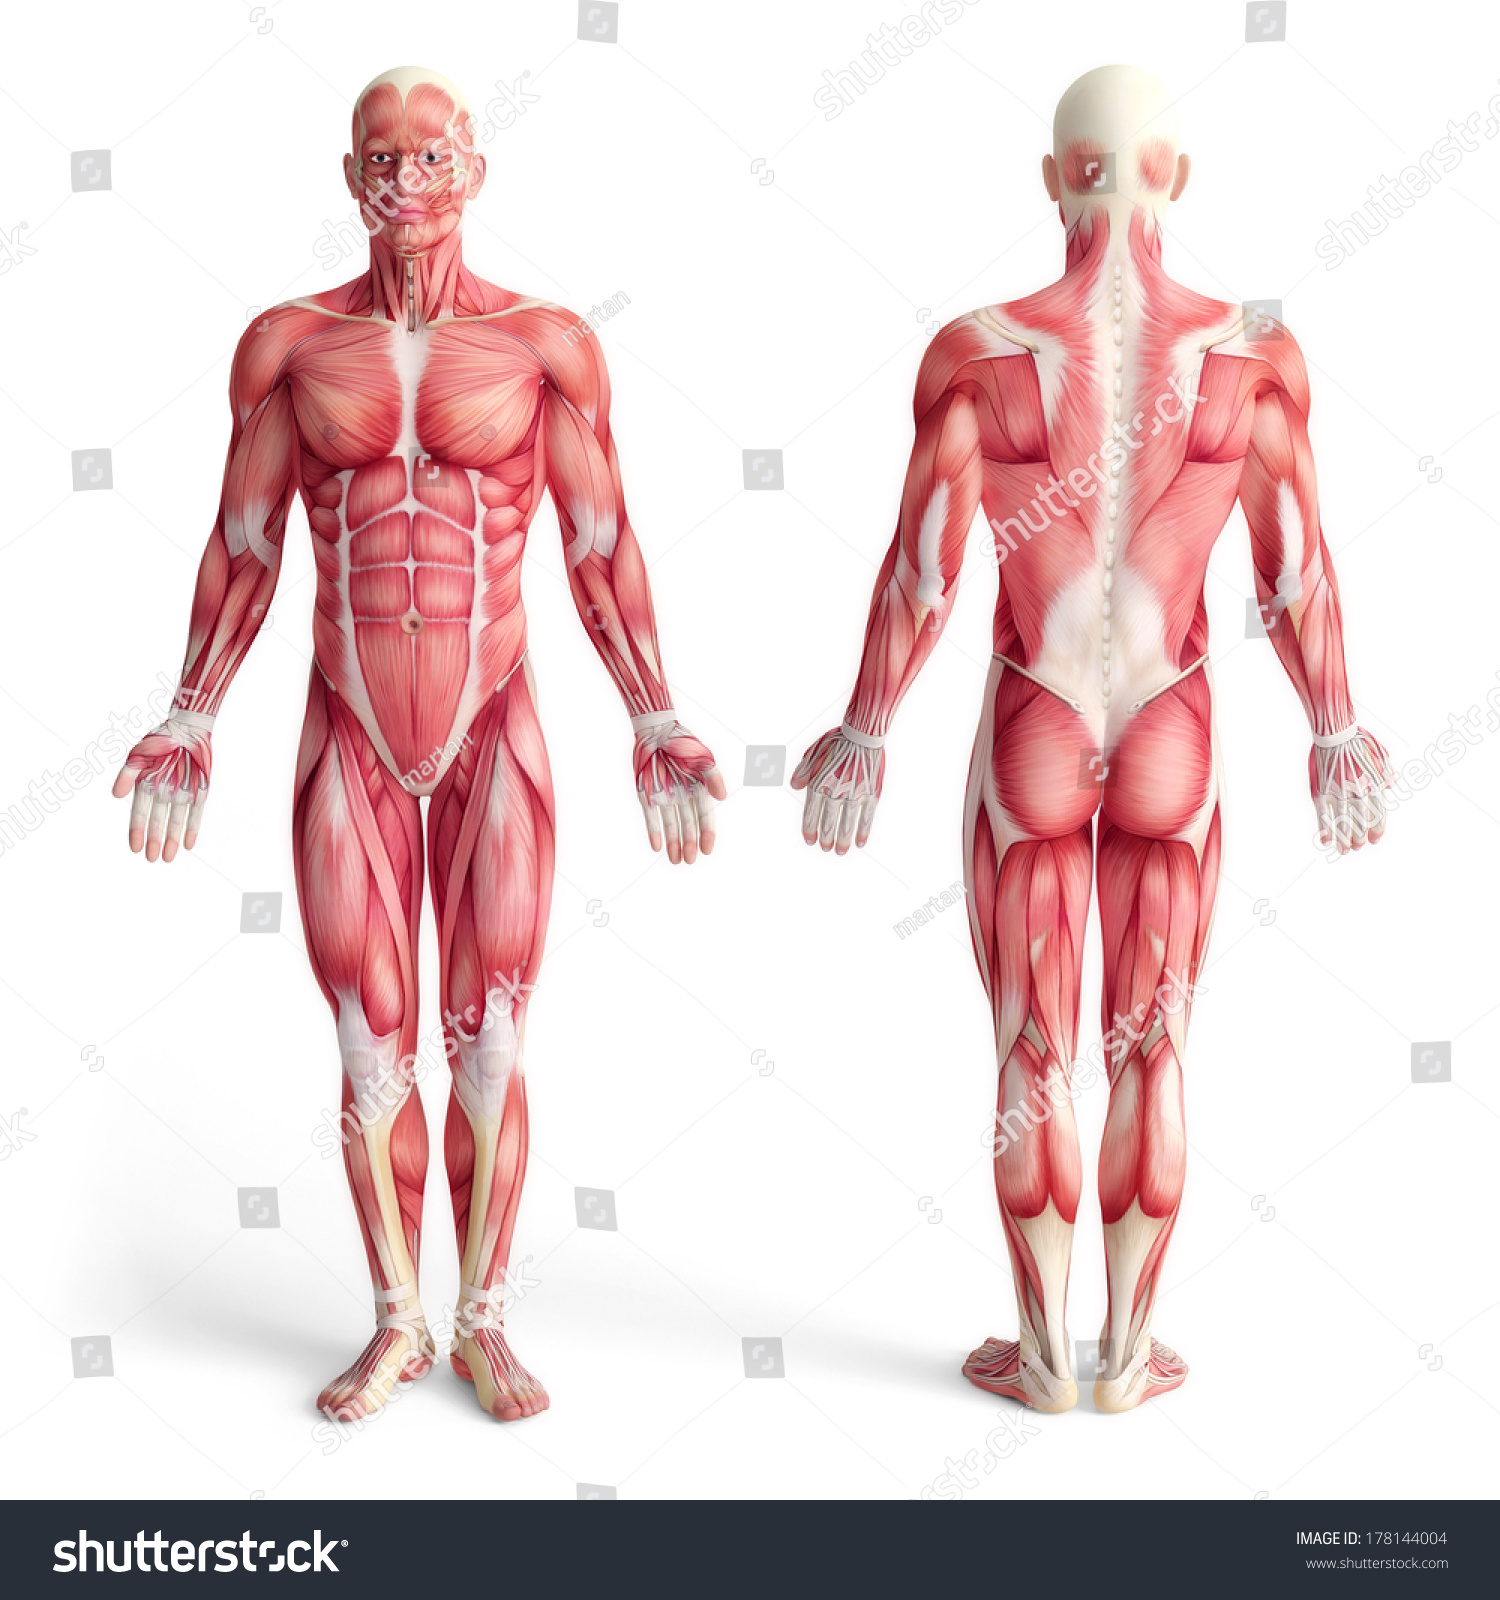 Male Anatomy Muscular System Front Back Stockillustration 178144004